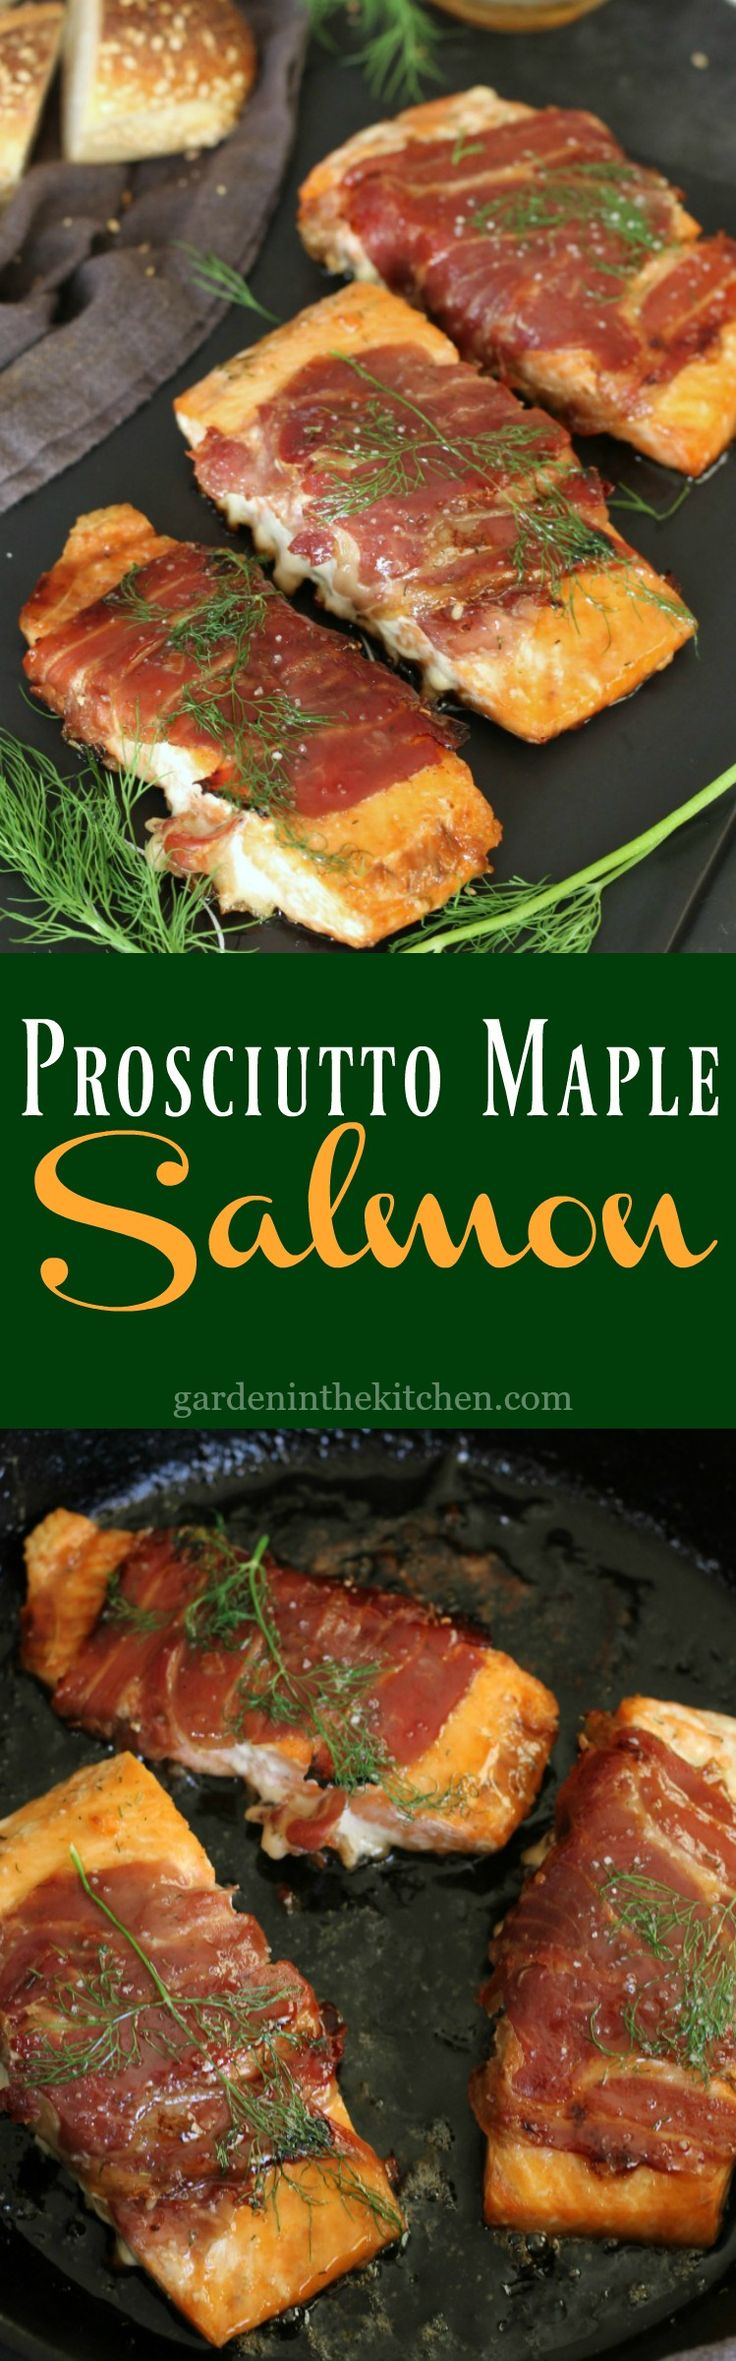 Prosciutto Maple Salmon